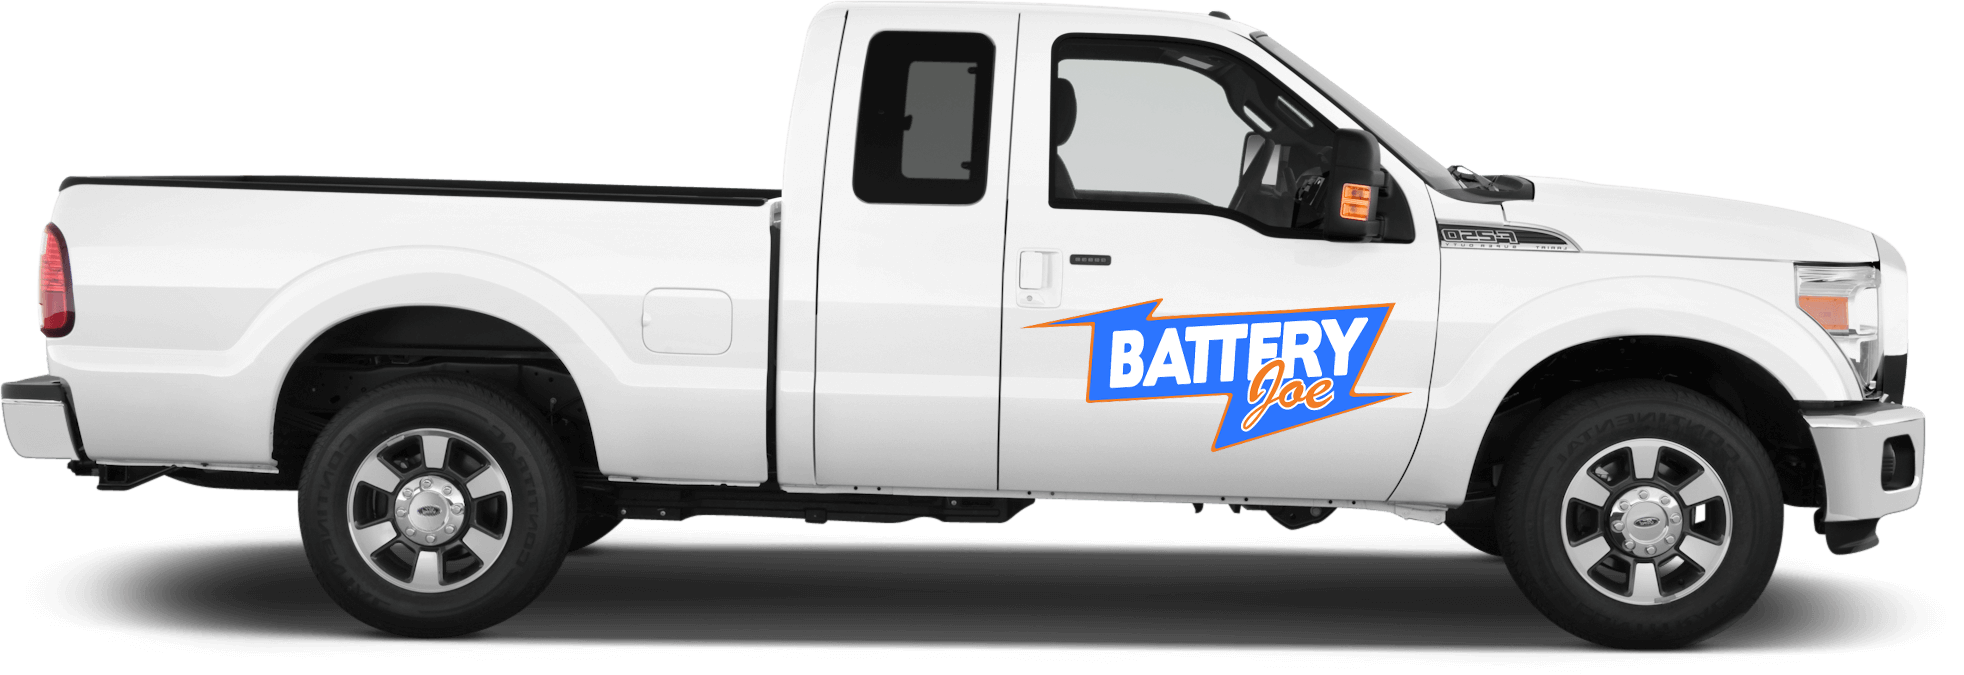 Battery Joe 19th Pick-Up & Delivery